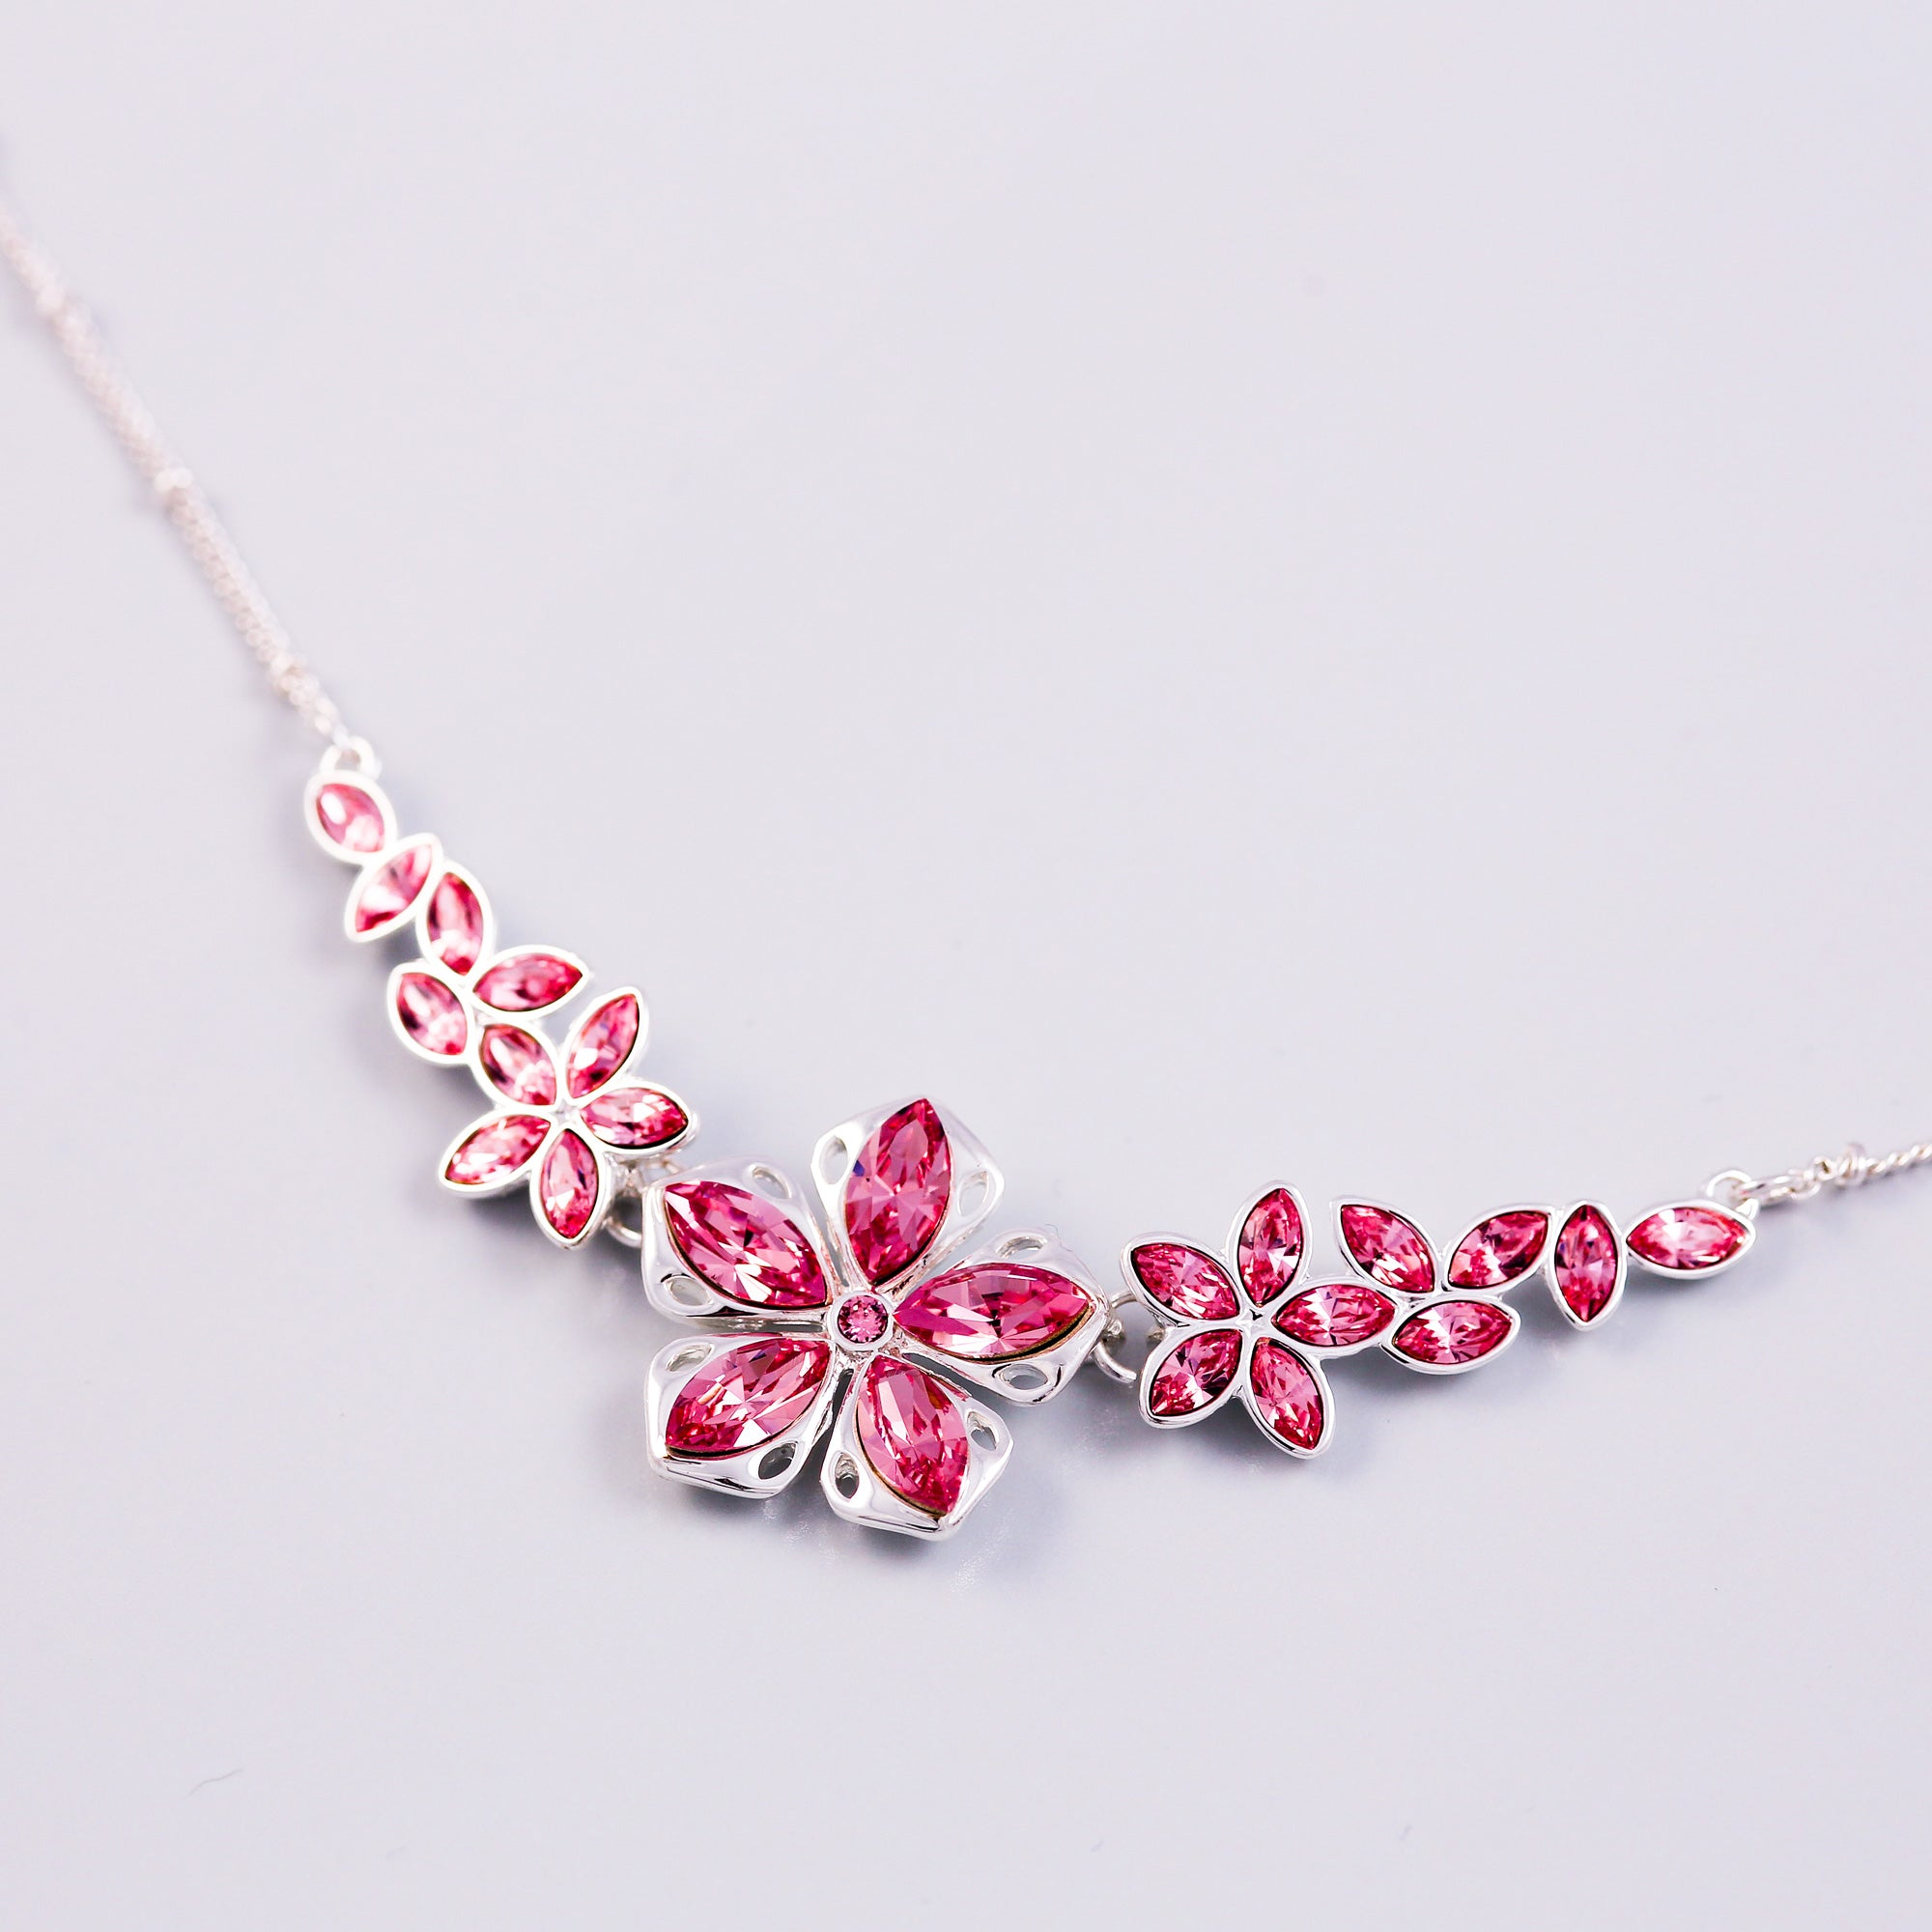 Silver & Rose Cherry Blossom Sakura Collar Necklace